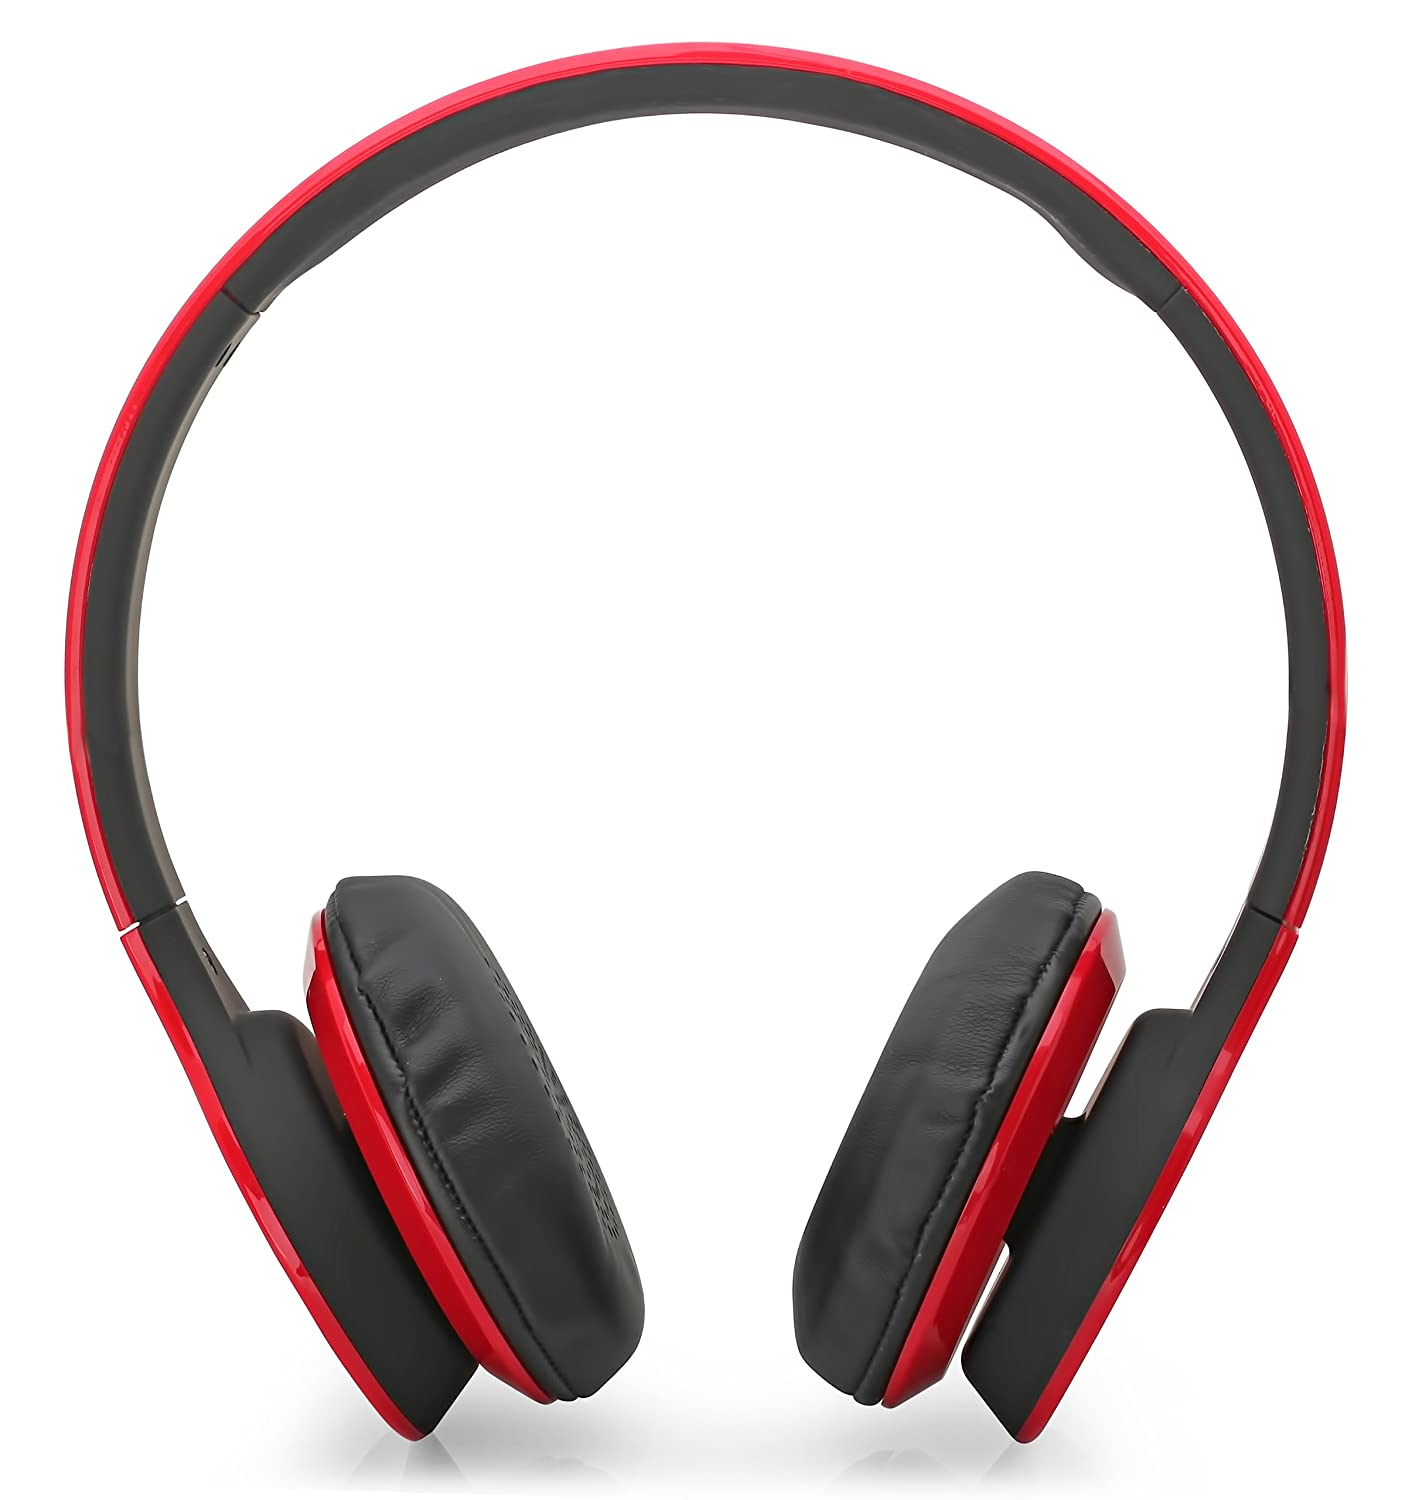 60812e4827e Aduro AMPLIFY Bluetooth Wireless Stereo Headphones / Headset with Built-in  Mic (Retail Packaging) (Red): Amazon.co.uk: Electronics